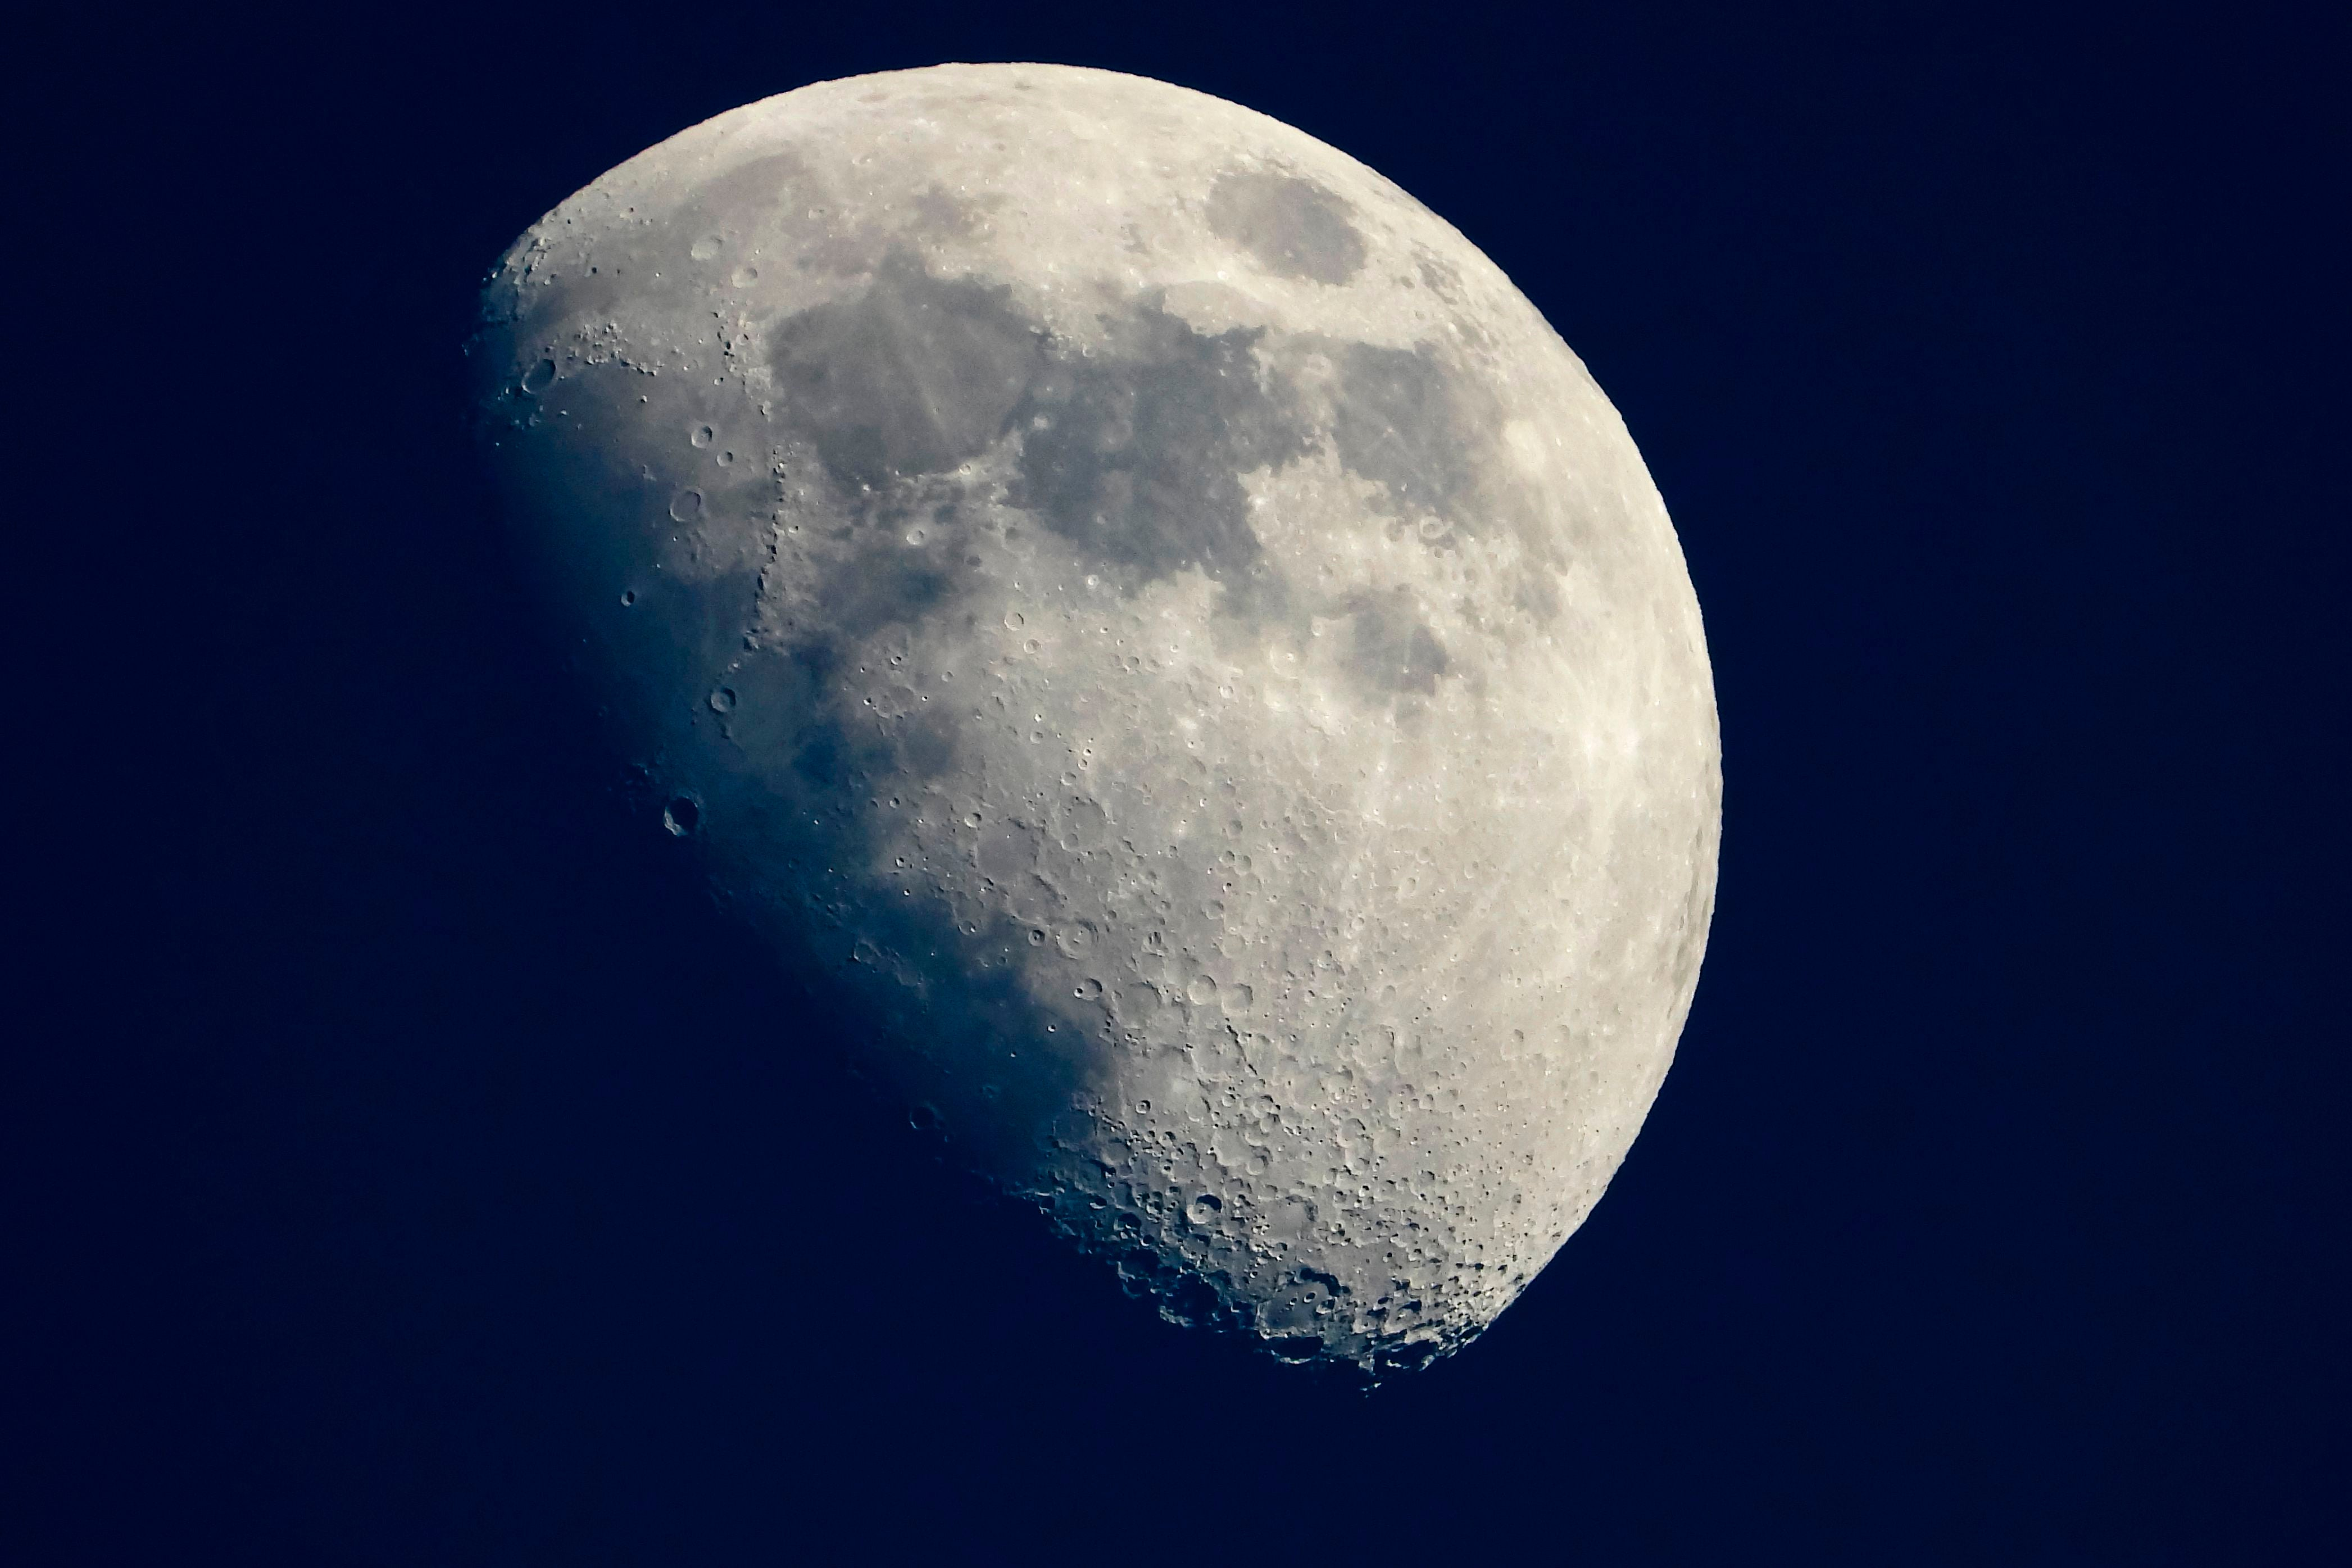 Scientists fear conflicts over the Moon's resources - The Independent